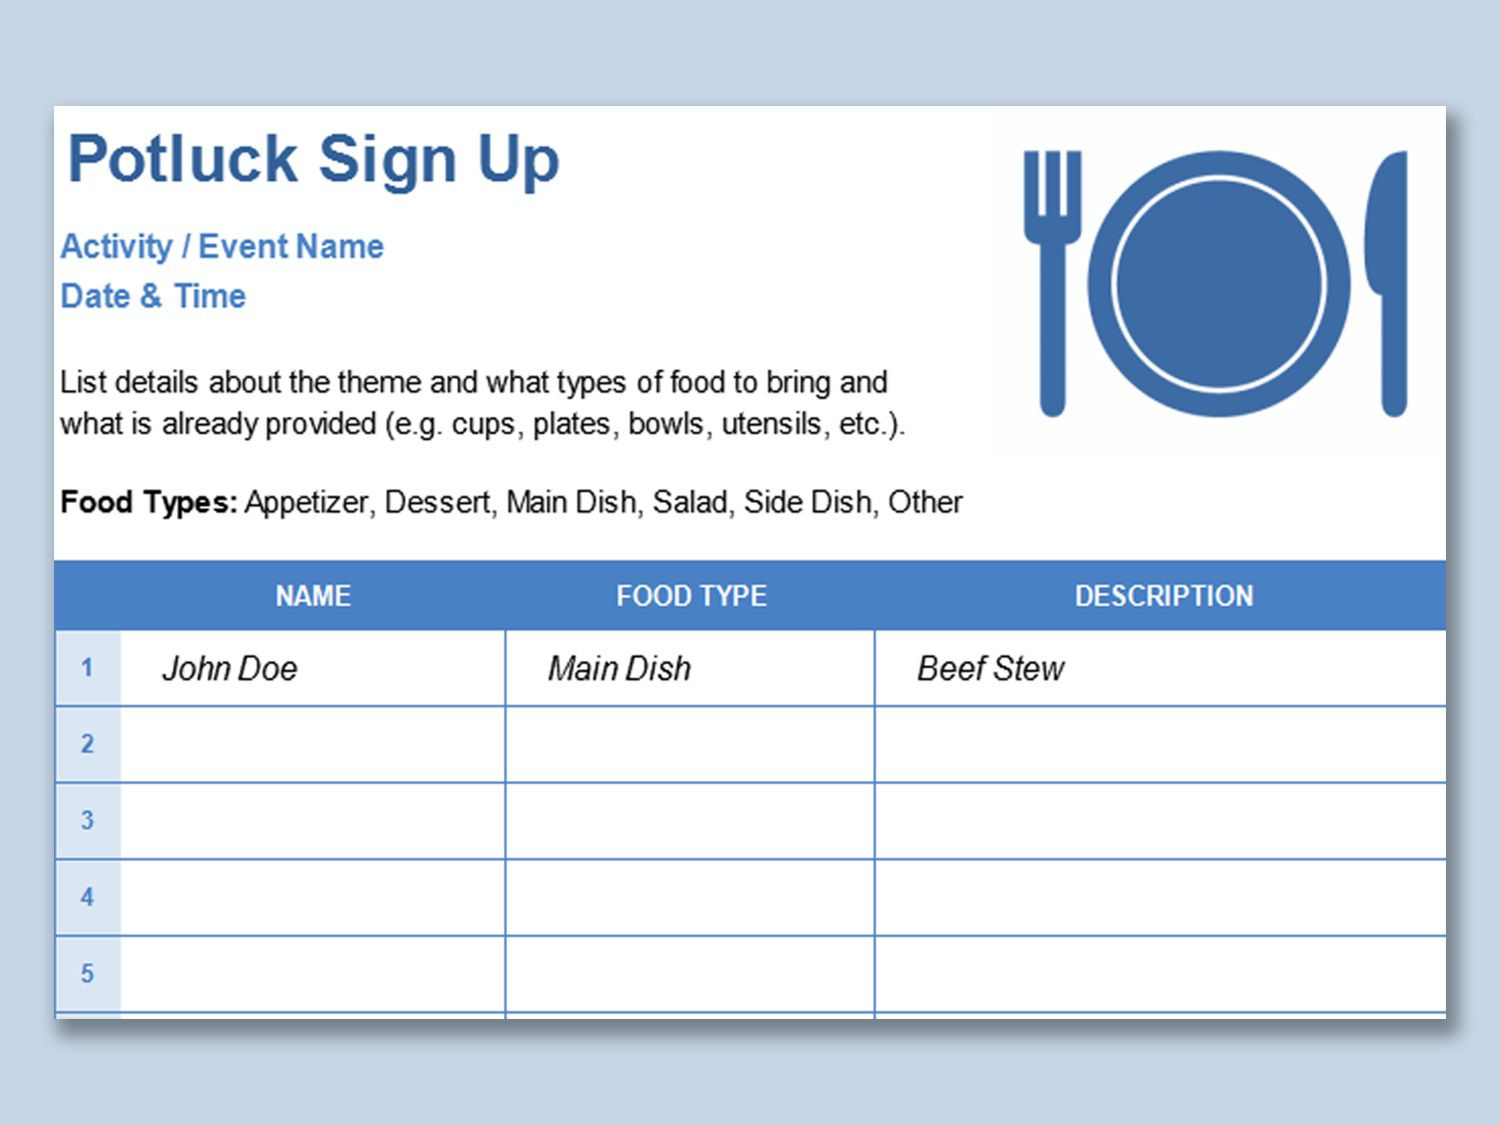 001 Simple Potluck Signup Sheet Template Word Image  Sign Up Free Holiday PrintableFull